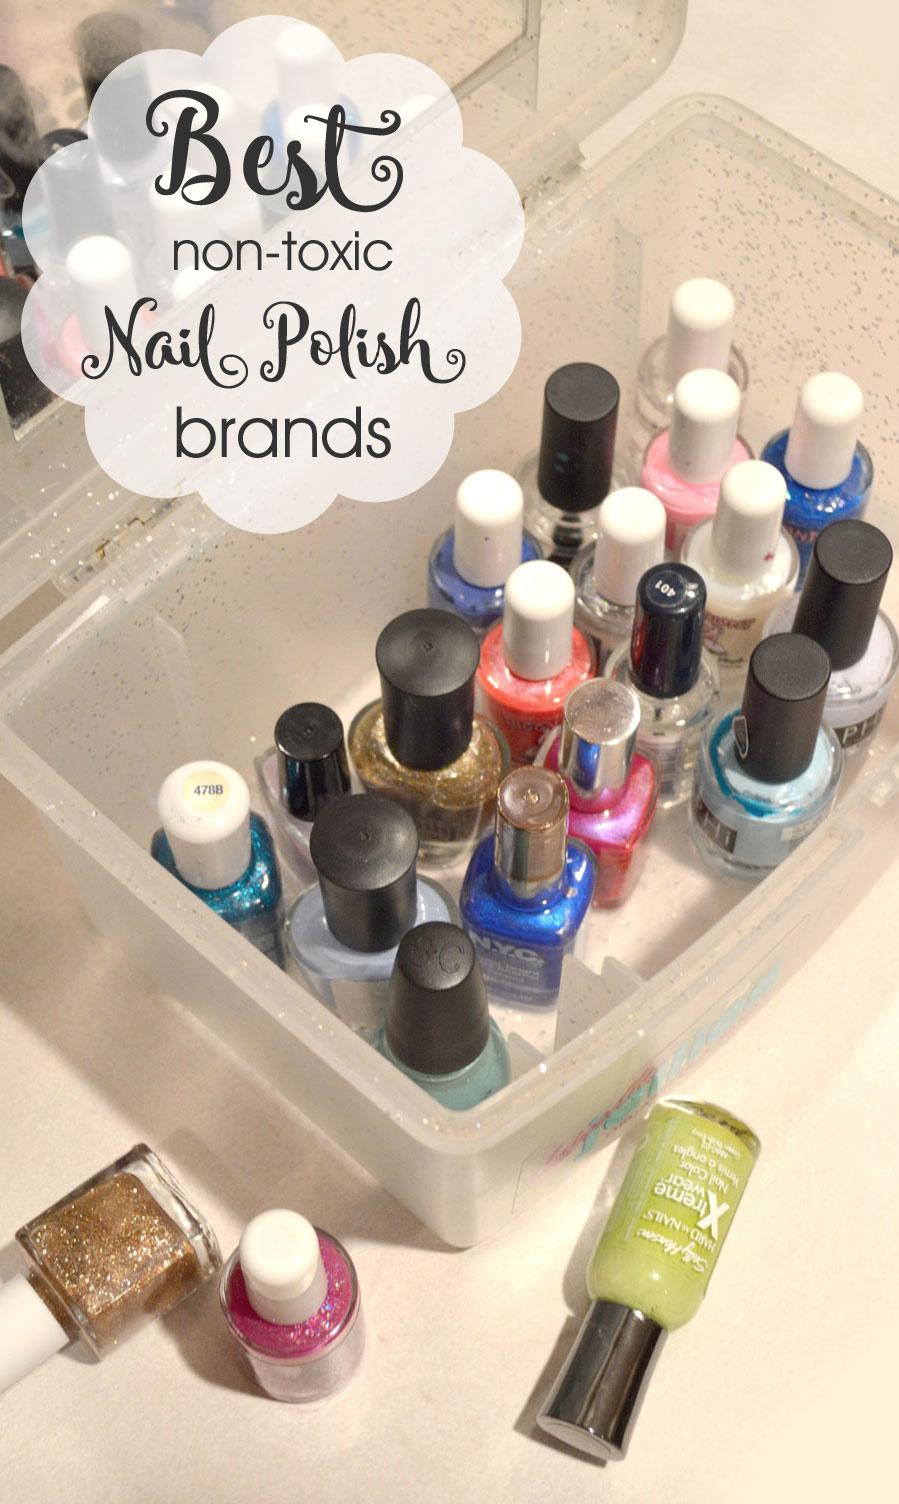 Luxurious Spa Day Amp 3 Free Nail Polish Brands Create Play Travel